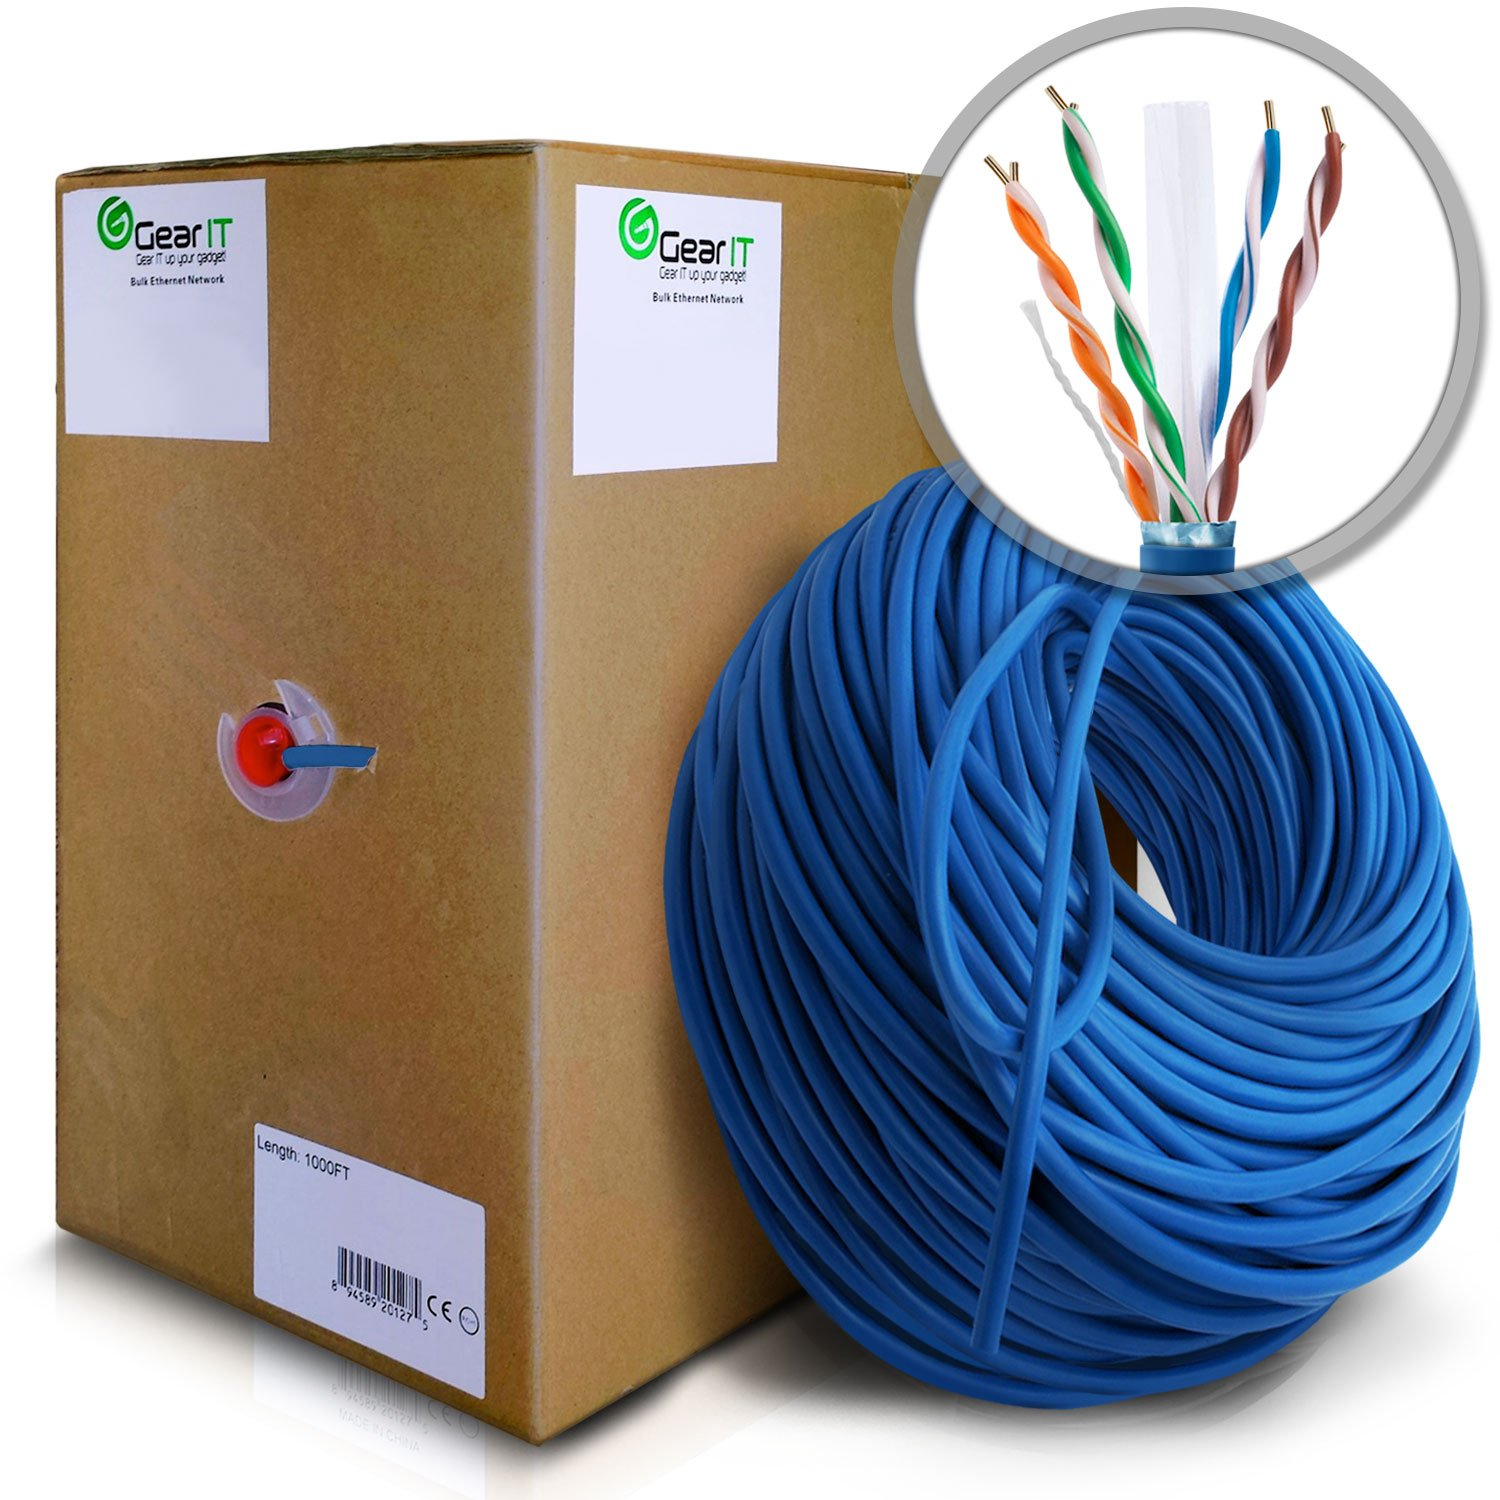 GearIT 1000 Feet Bulk Cat6 STP Ethernet Cable - Solid Twisted Pair - Cat 6 Shielded 550Mhz 24AWG Full Copper Wire Pull Box - In-Wall Rated (CM), Blue